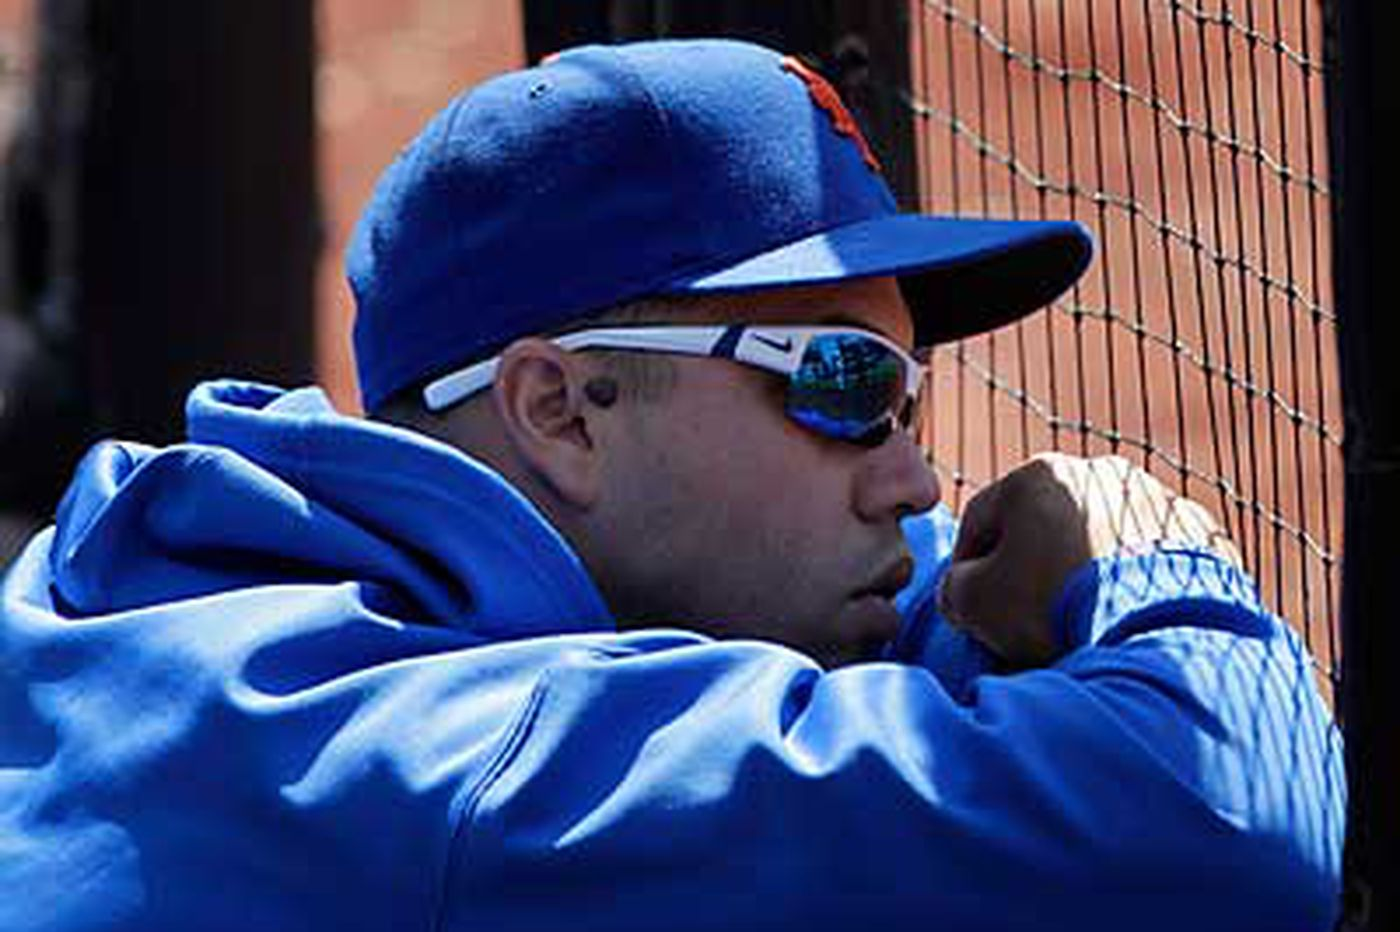 Phillies Notebook: Mets' Beltran could be of interest to contending teams like Phillies